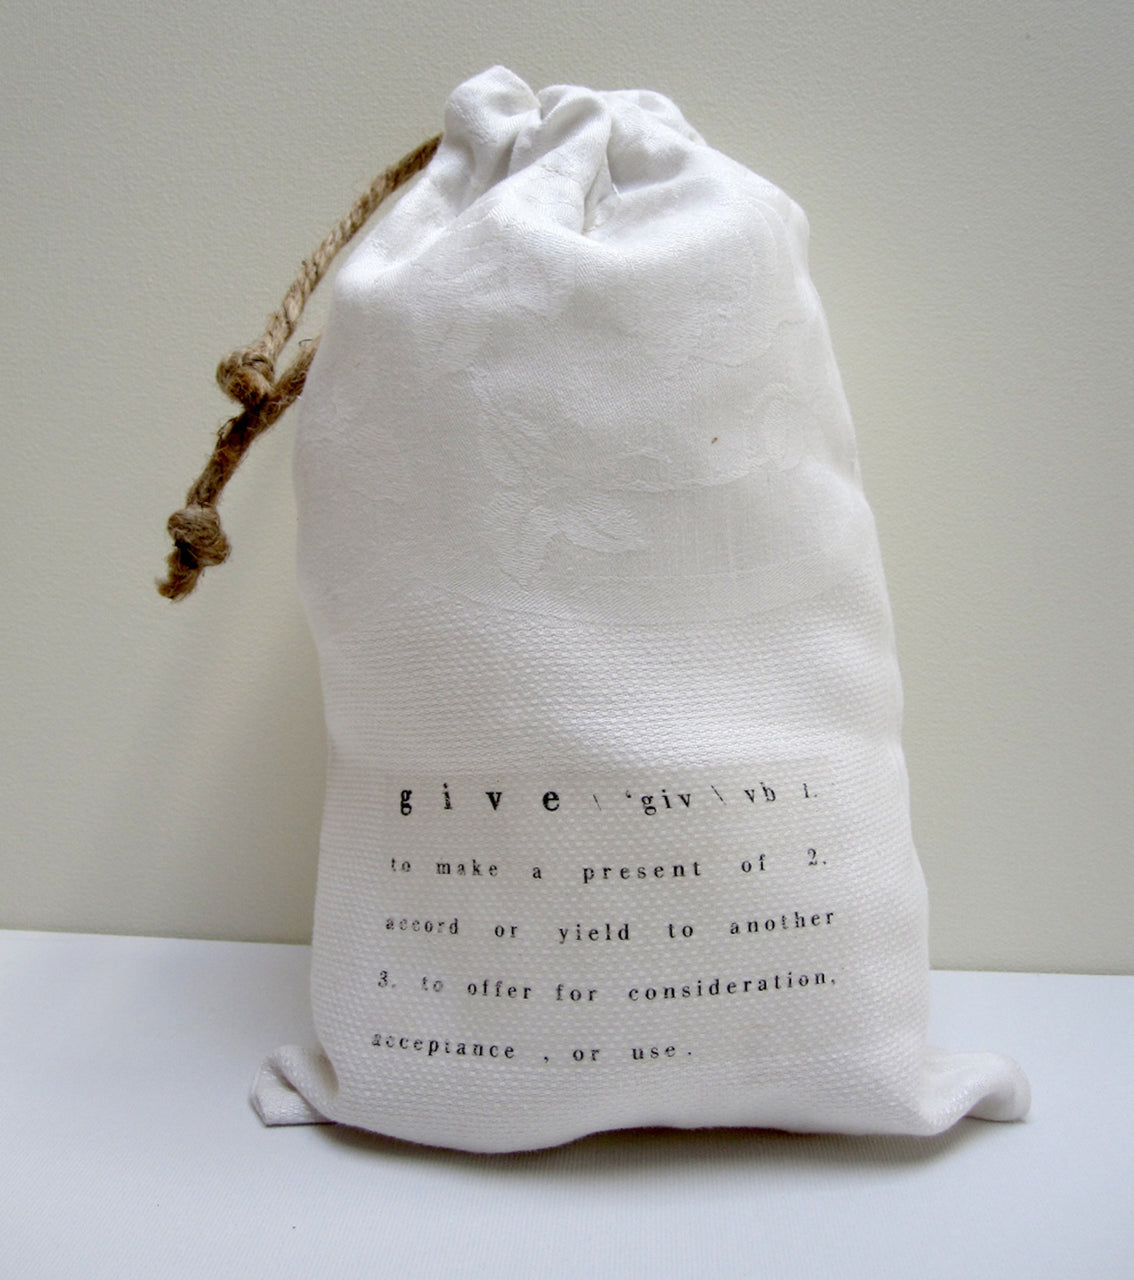 vintage textile bags with text